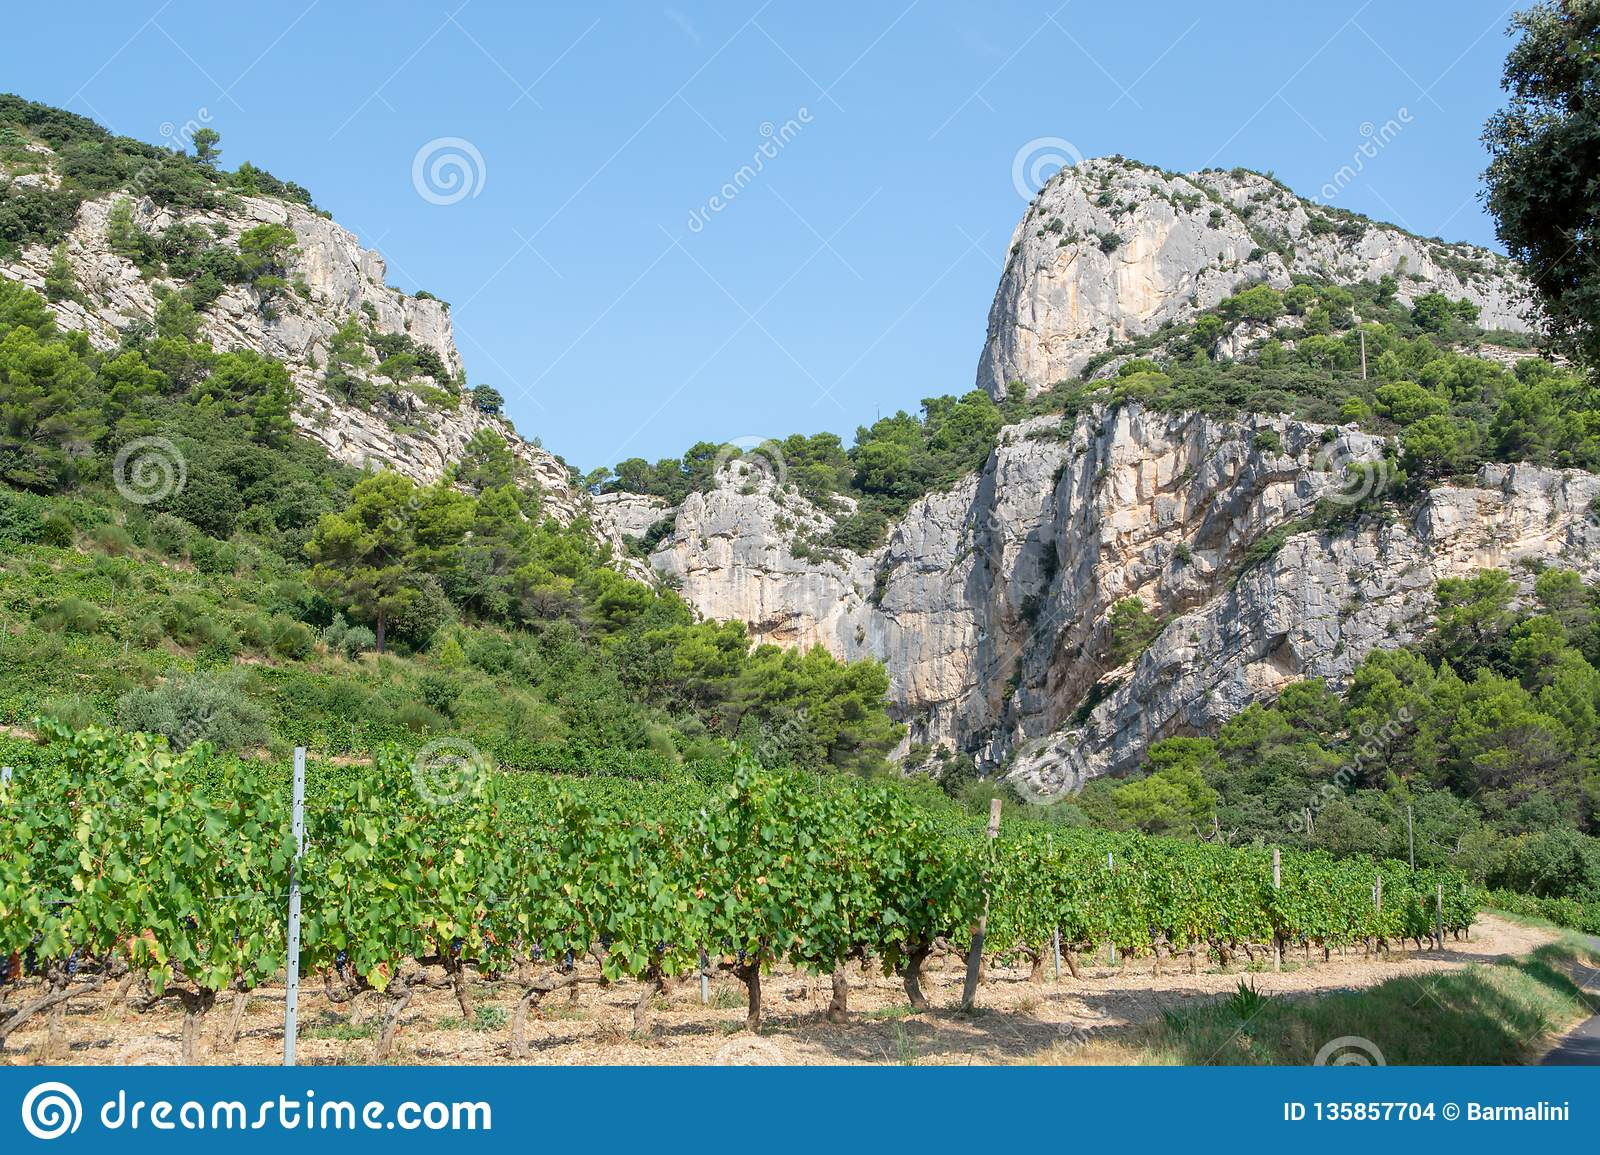 French red AOC wine grapes plant, new harvest of wine grape in France, Vaucluse, Gigondas domain or chateau vineyard Dentelles de